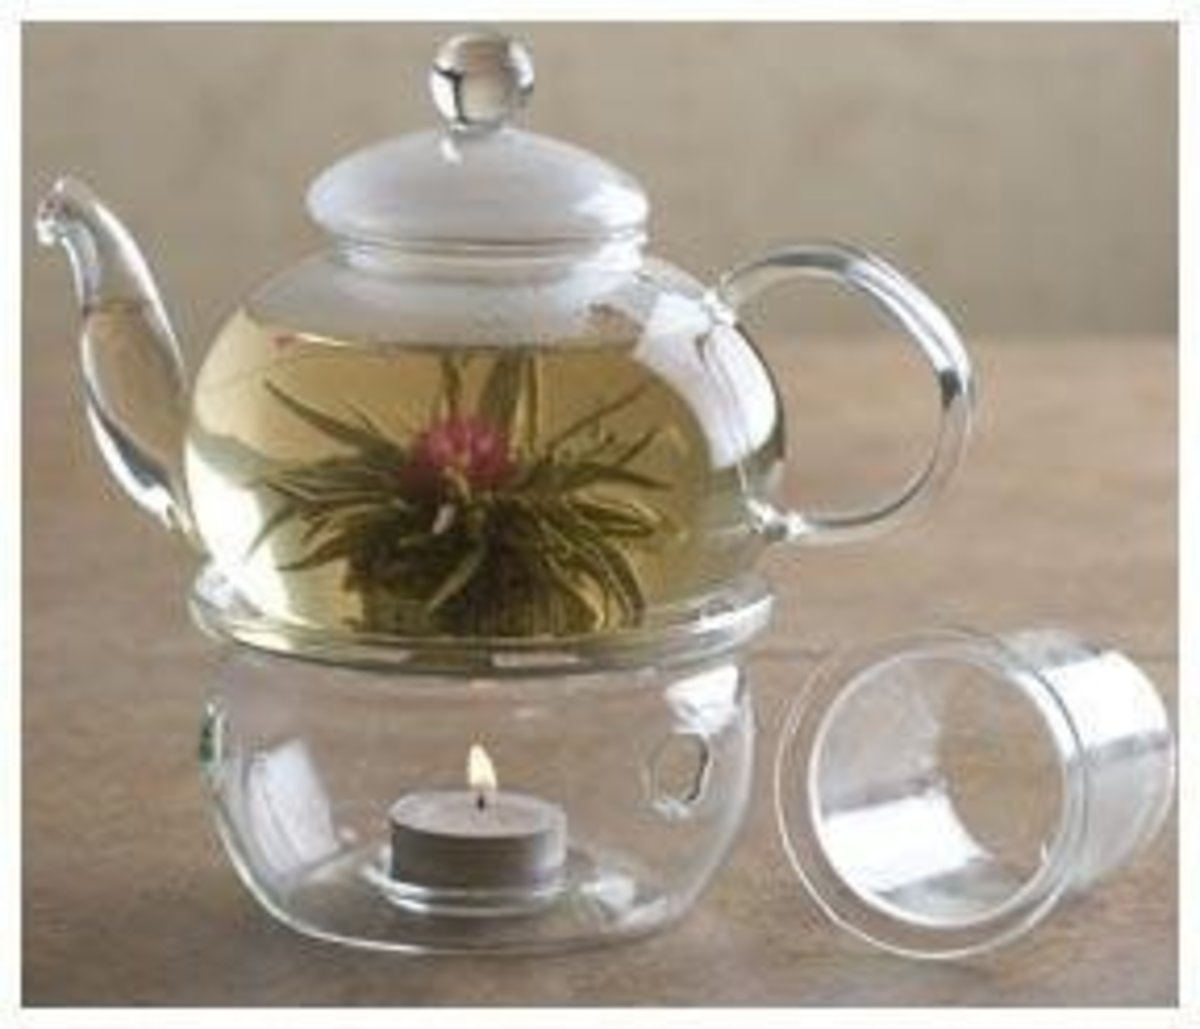 this makes for an interesting and creative idea for introducing scent to a room and as a centrepiece.